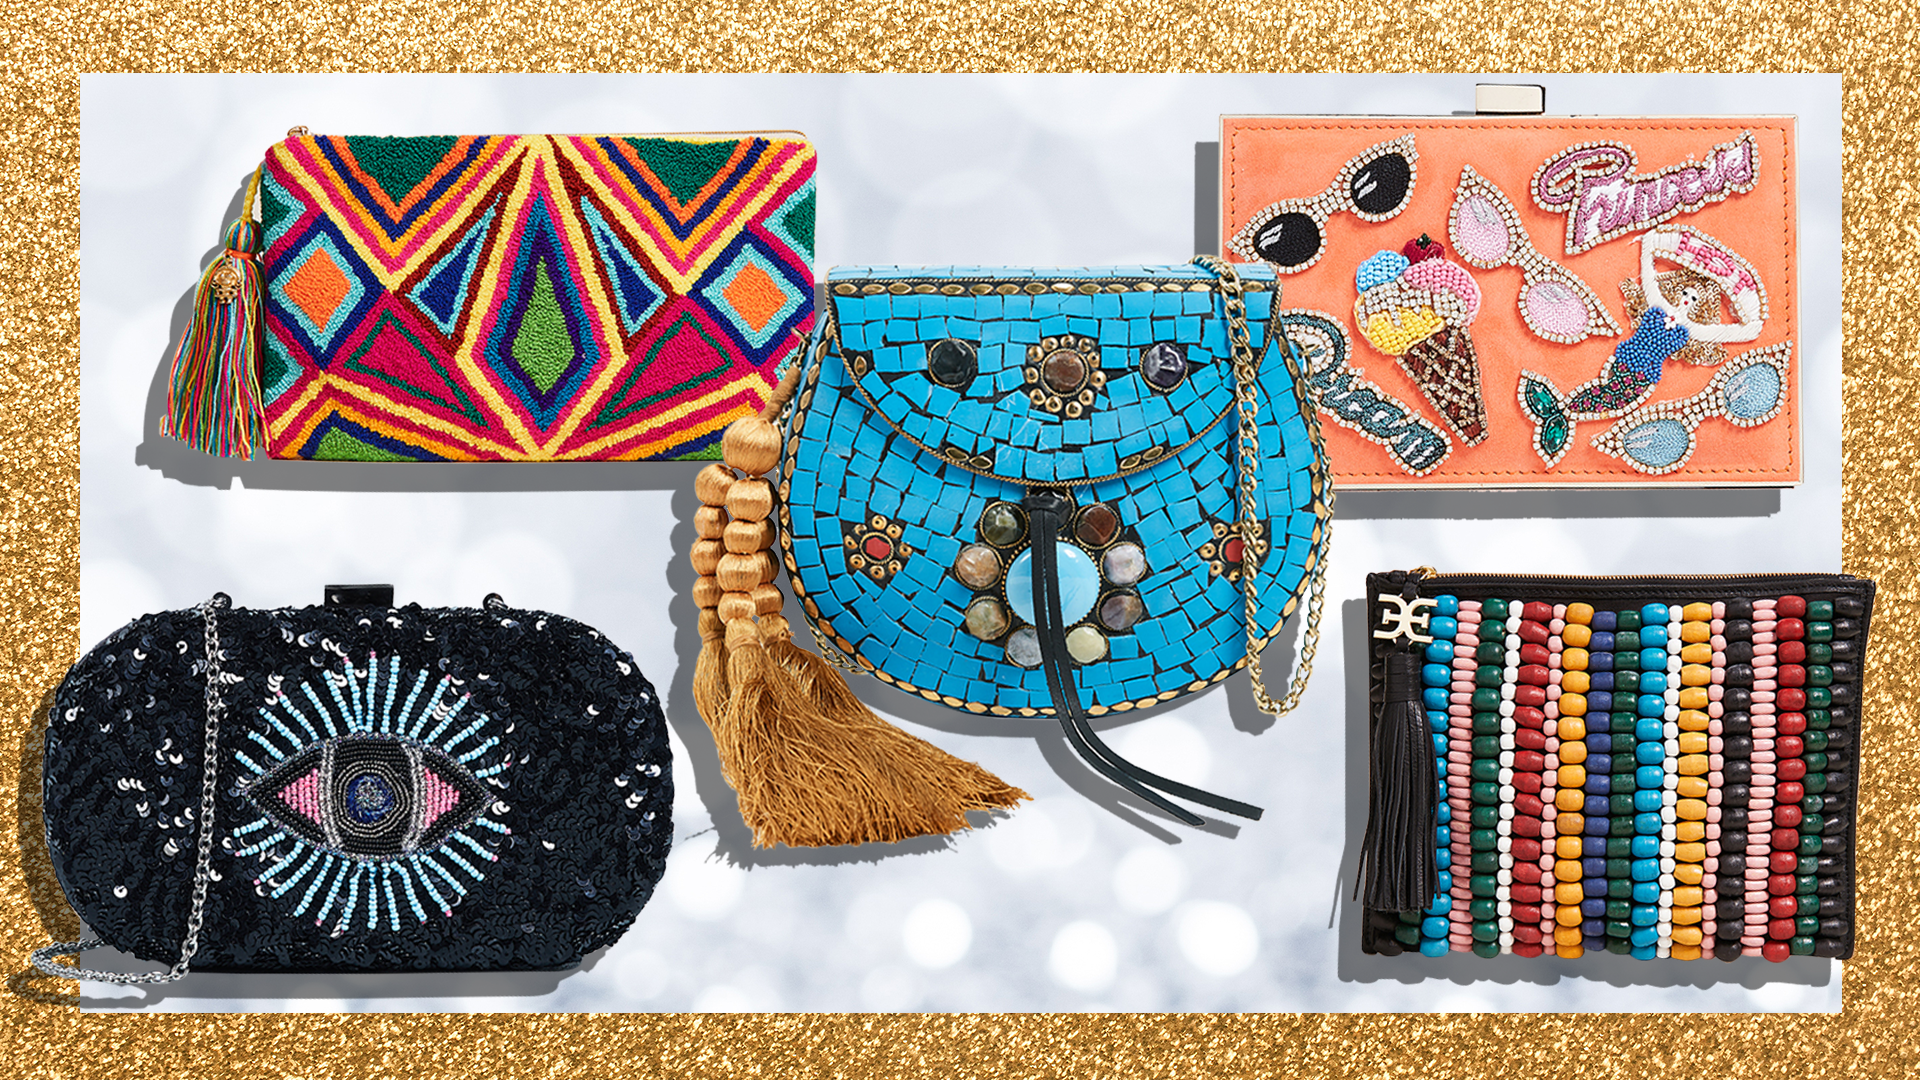 21 Reasons to Invest in an Intricate Embellished Clutch